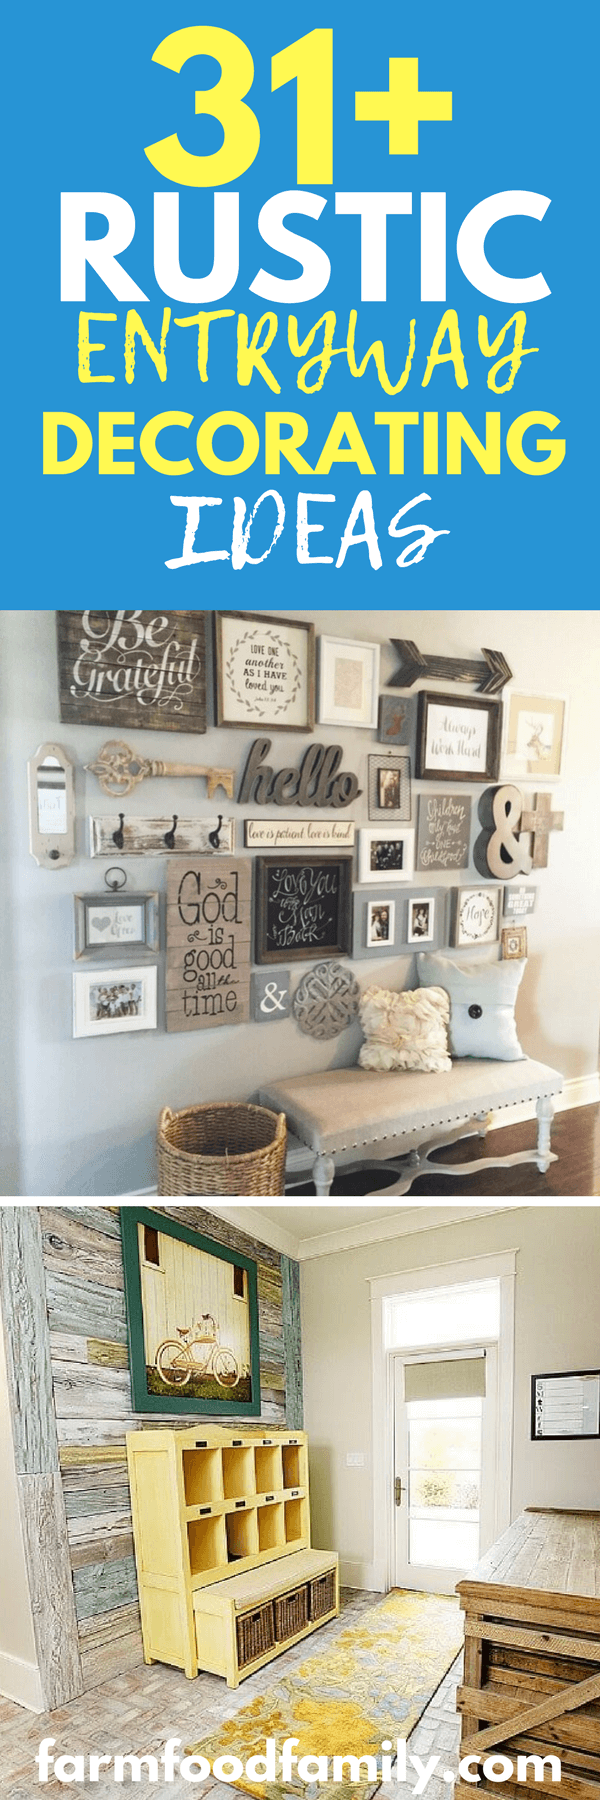 Entry spaces are magnets for clutter, however, it can be difficult to decorate a space that receives so much traffic. How can you create a welcoming entry that you want to come home to, while still providing a way to organize everyone's gear? These 25+ stunning rusticentryway decorating ideas will show you how!